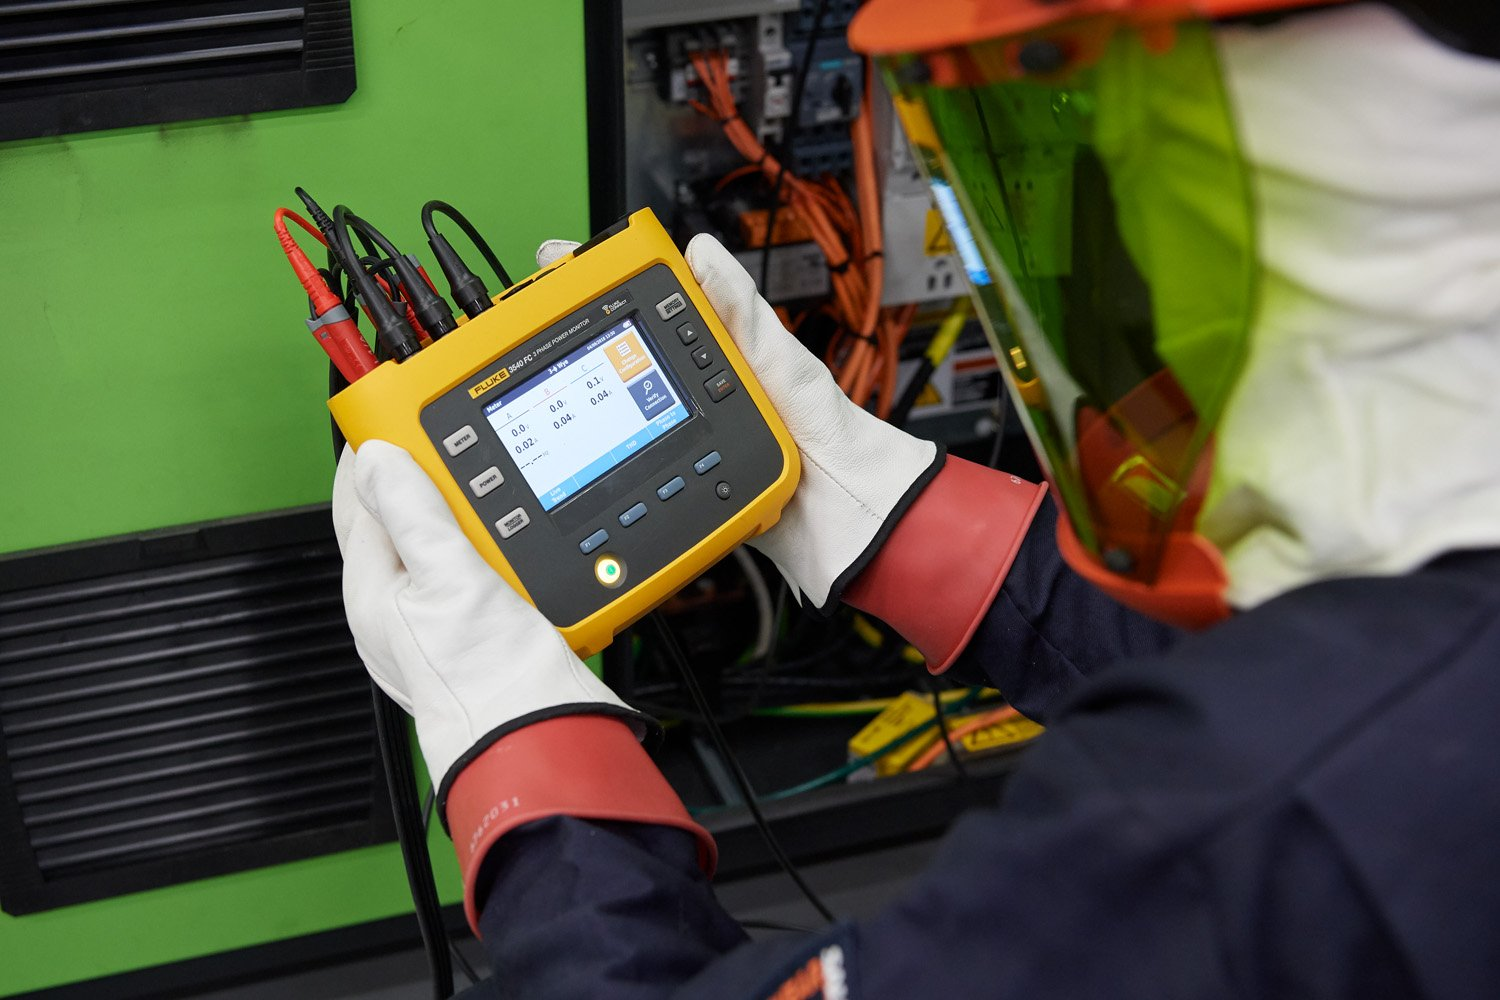 A user looks at data on the Fluke 3540 FC Three-Phase Power Monitor.